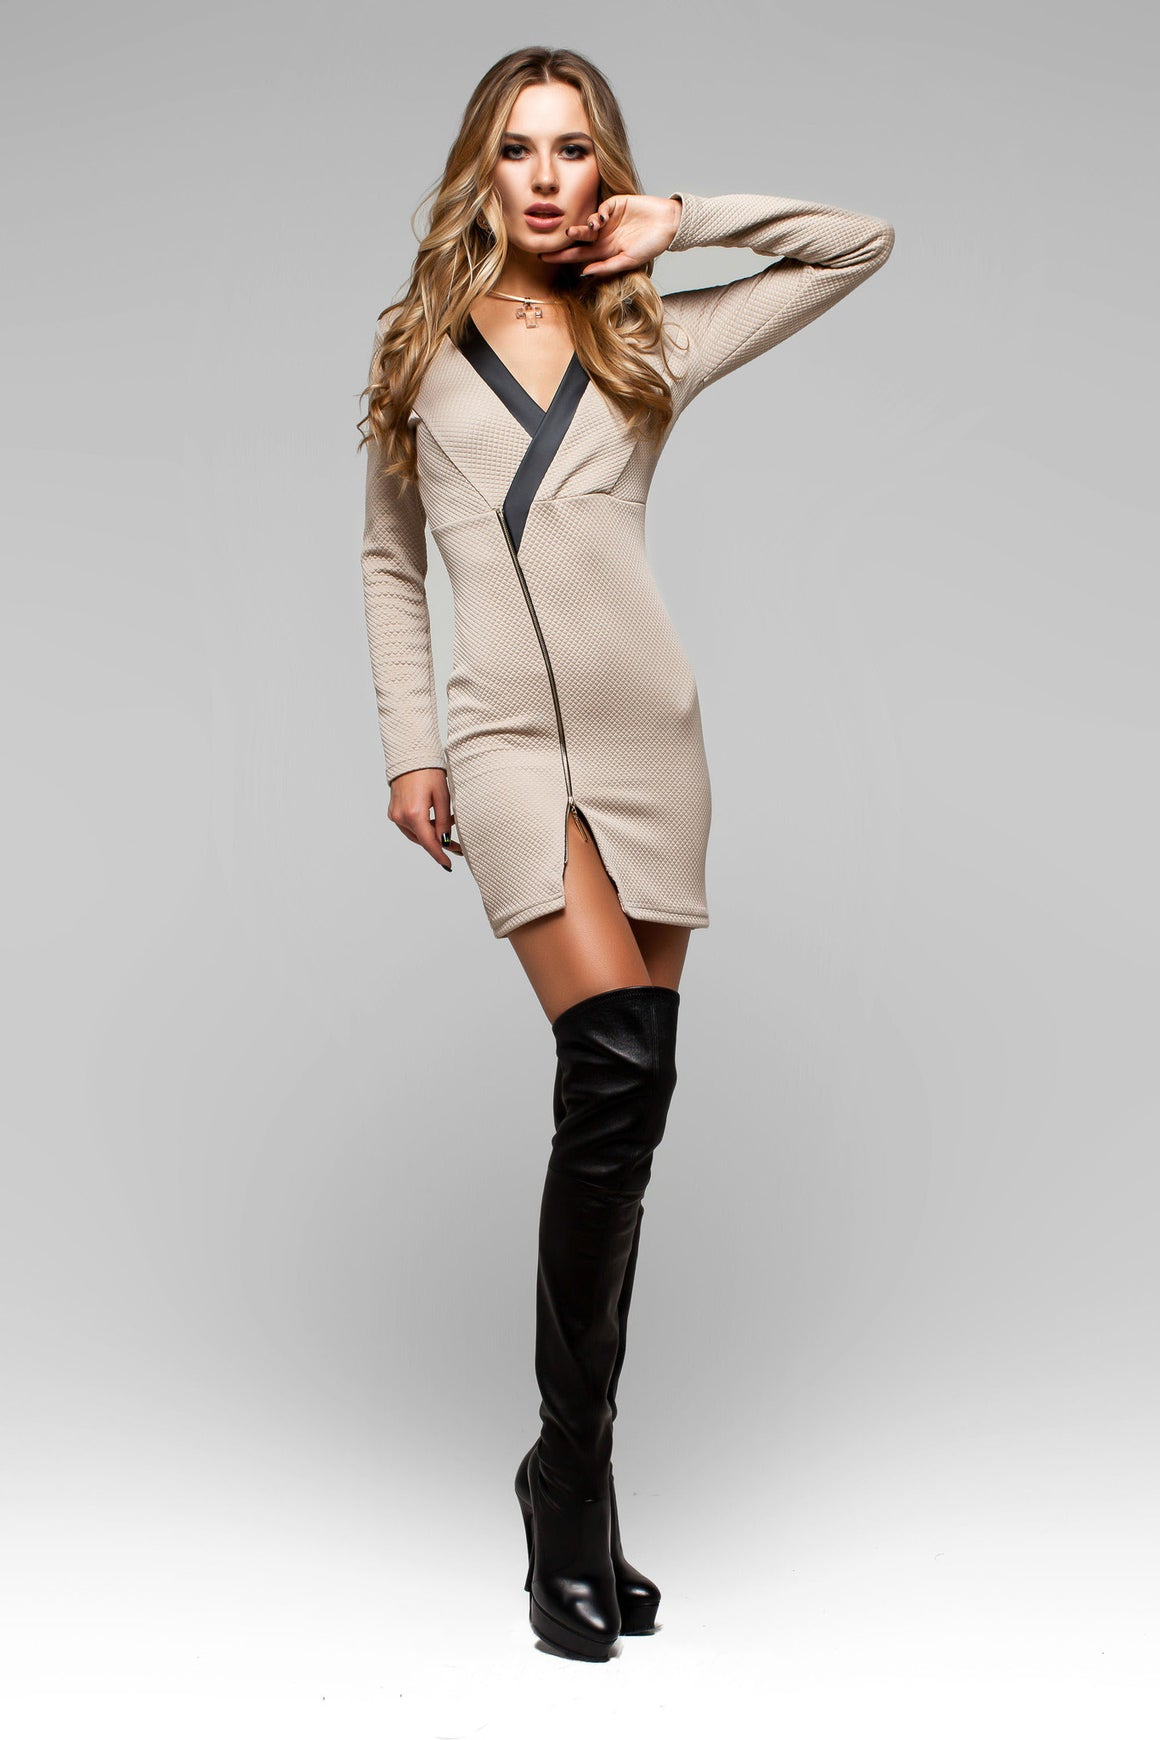 Beige/Tan Bodycon Tunic, Short Dress with Zipper Deco - Kollekcio  - 1